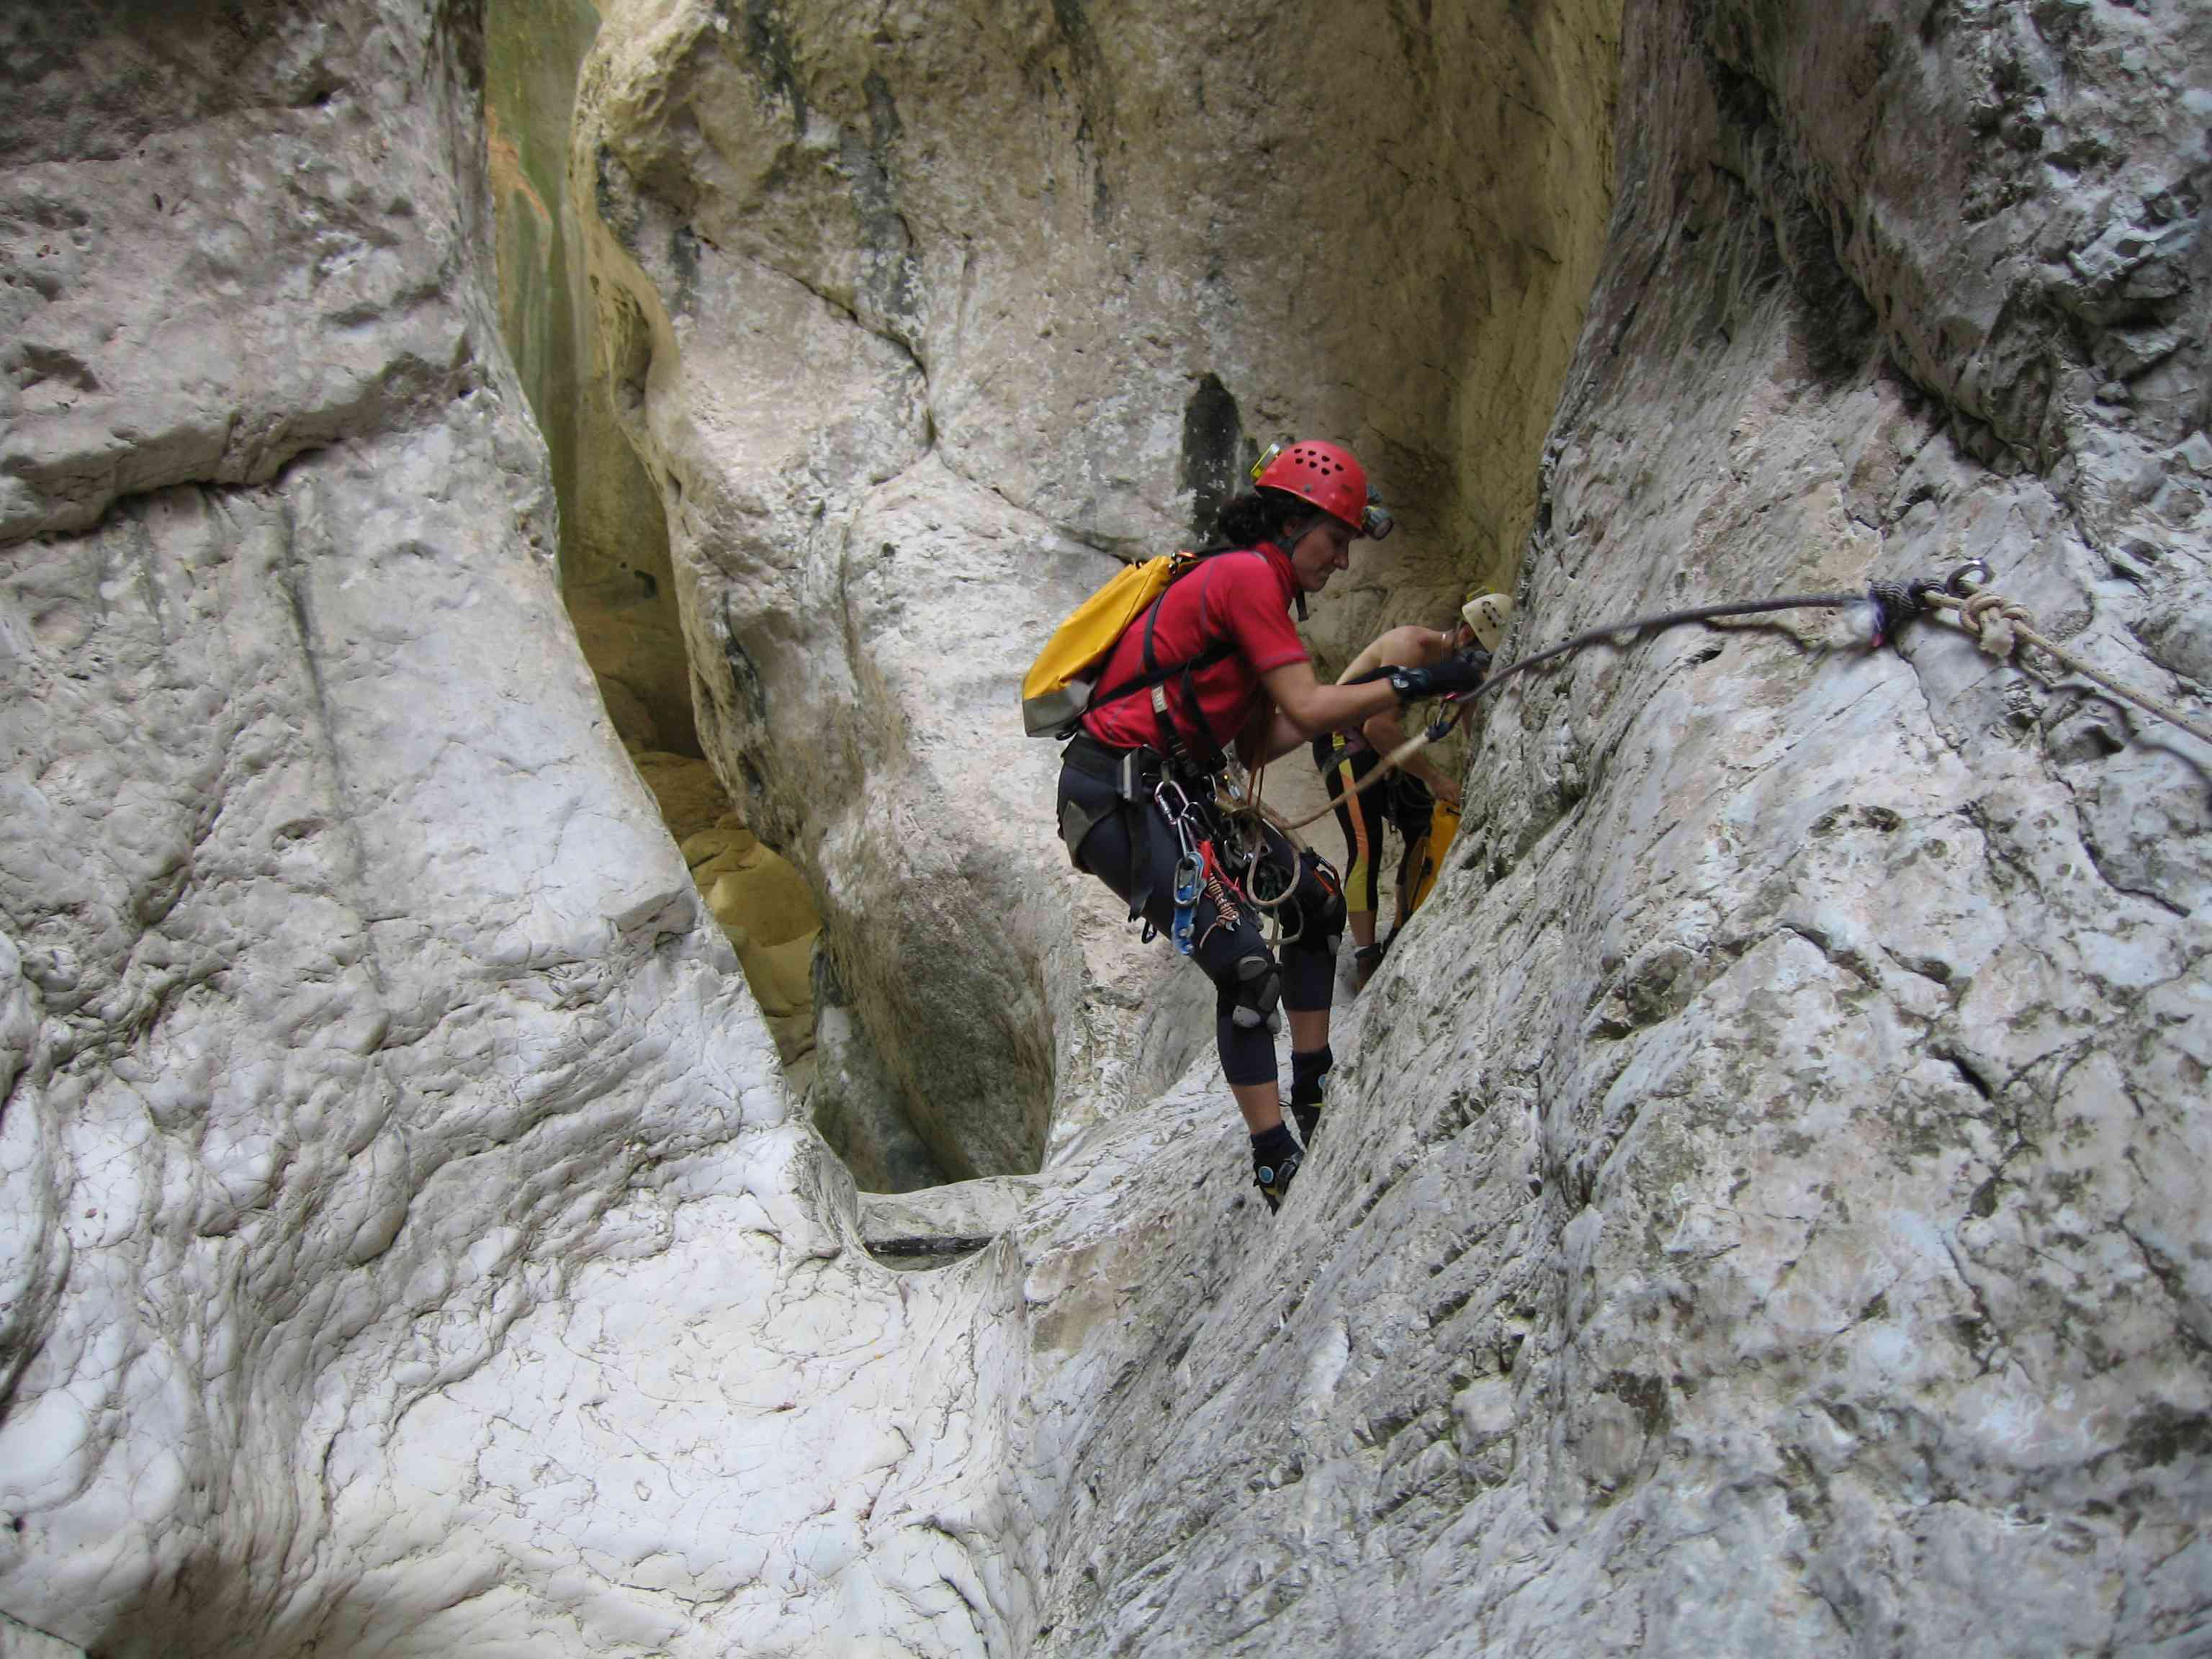 A couple secures their ropes while canyoning